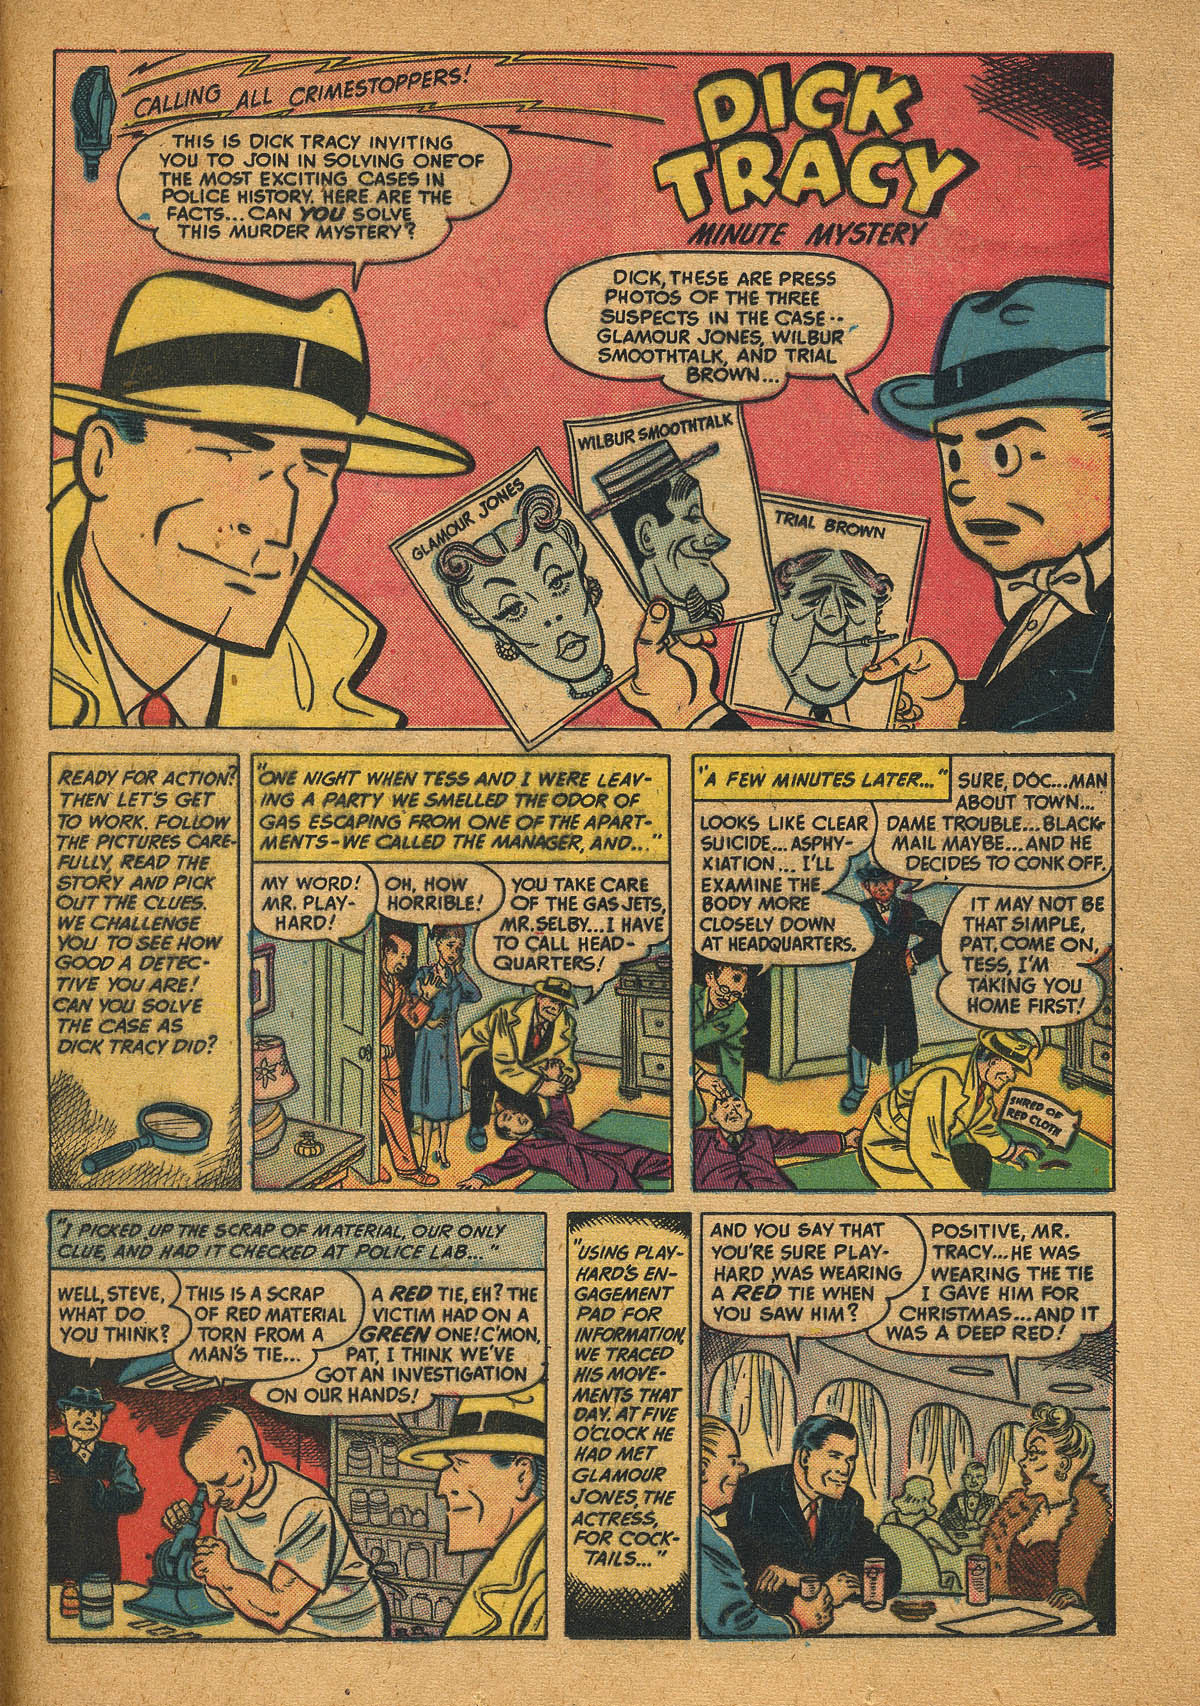 Dick-Tracy-Monthly-025-Harvey-Mar-1950-025